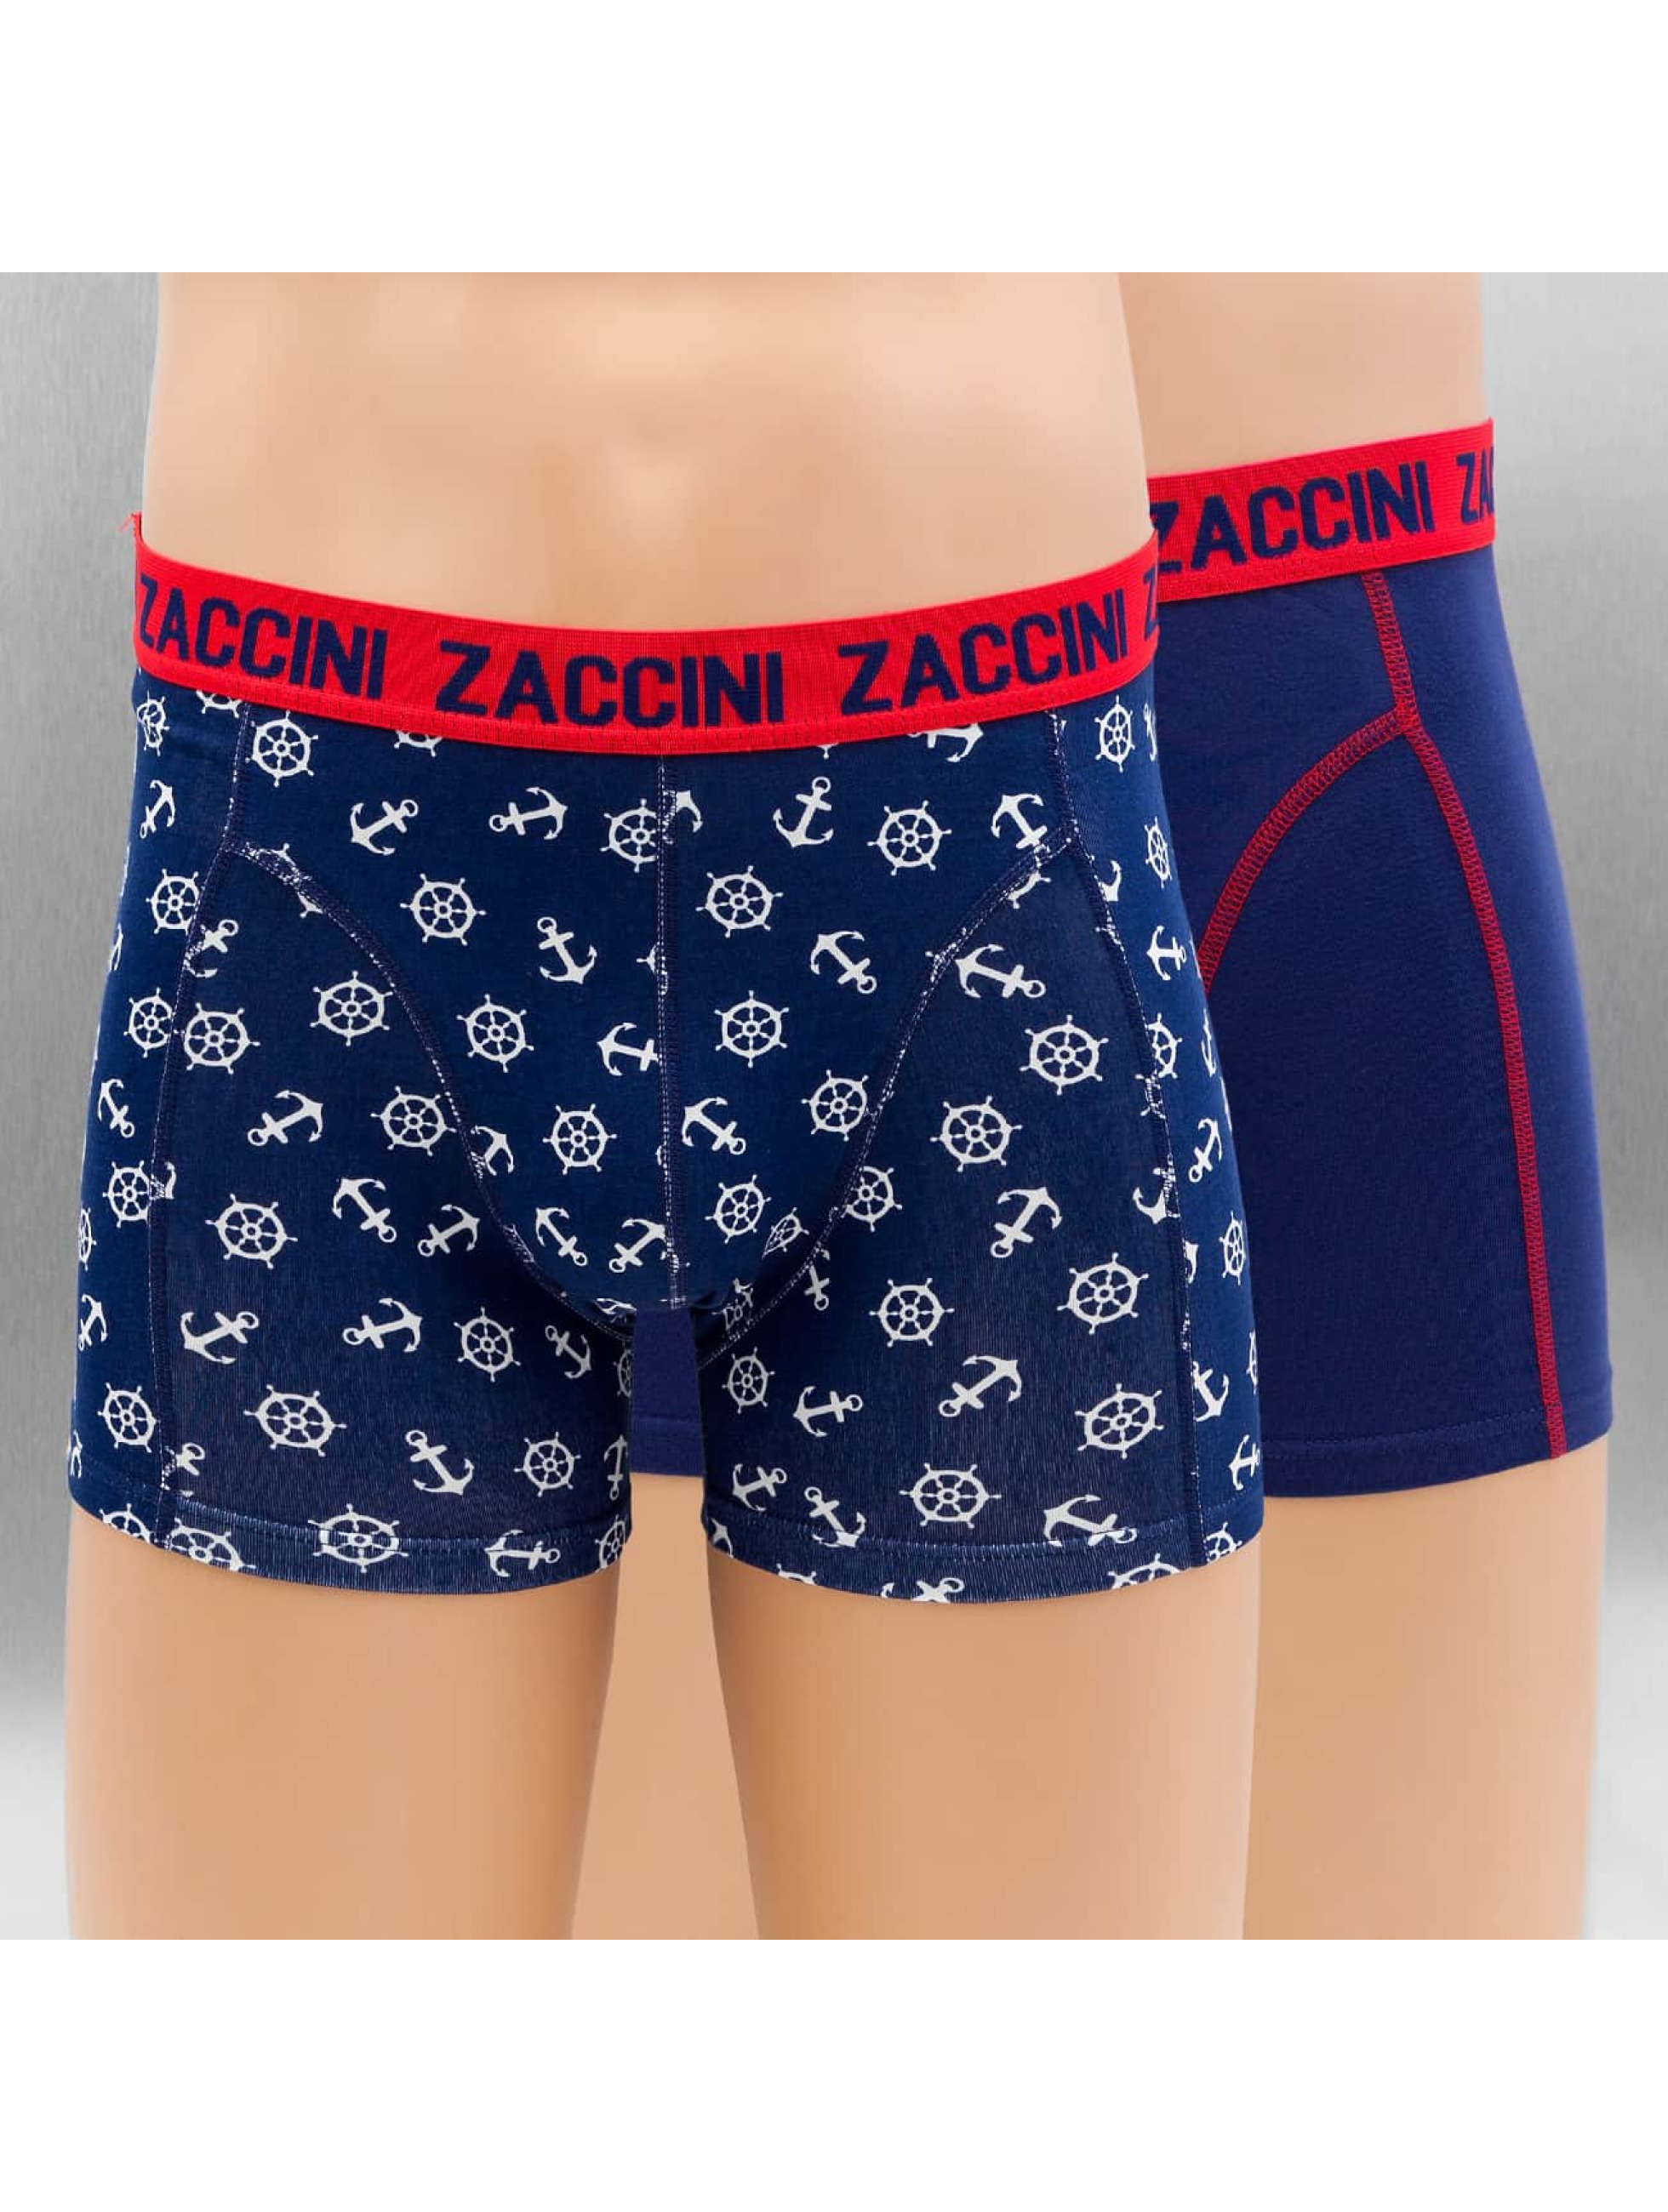 Zaccini Boxer Nautical 2-Pack bleu